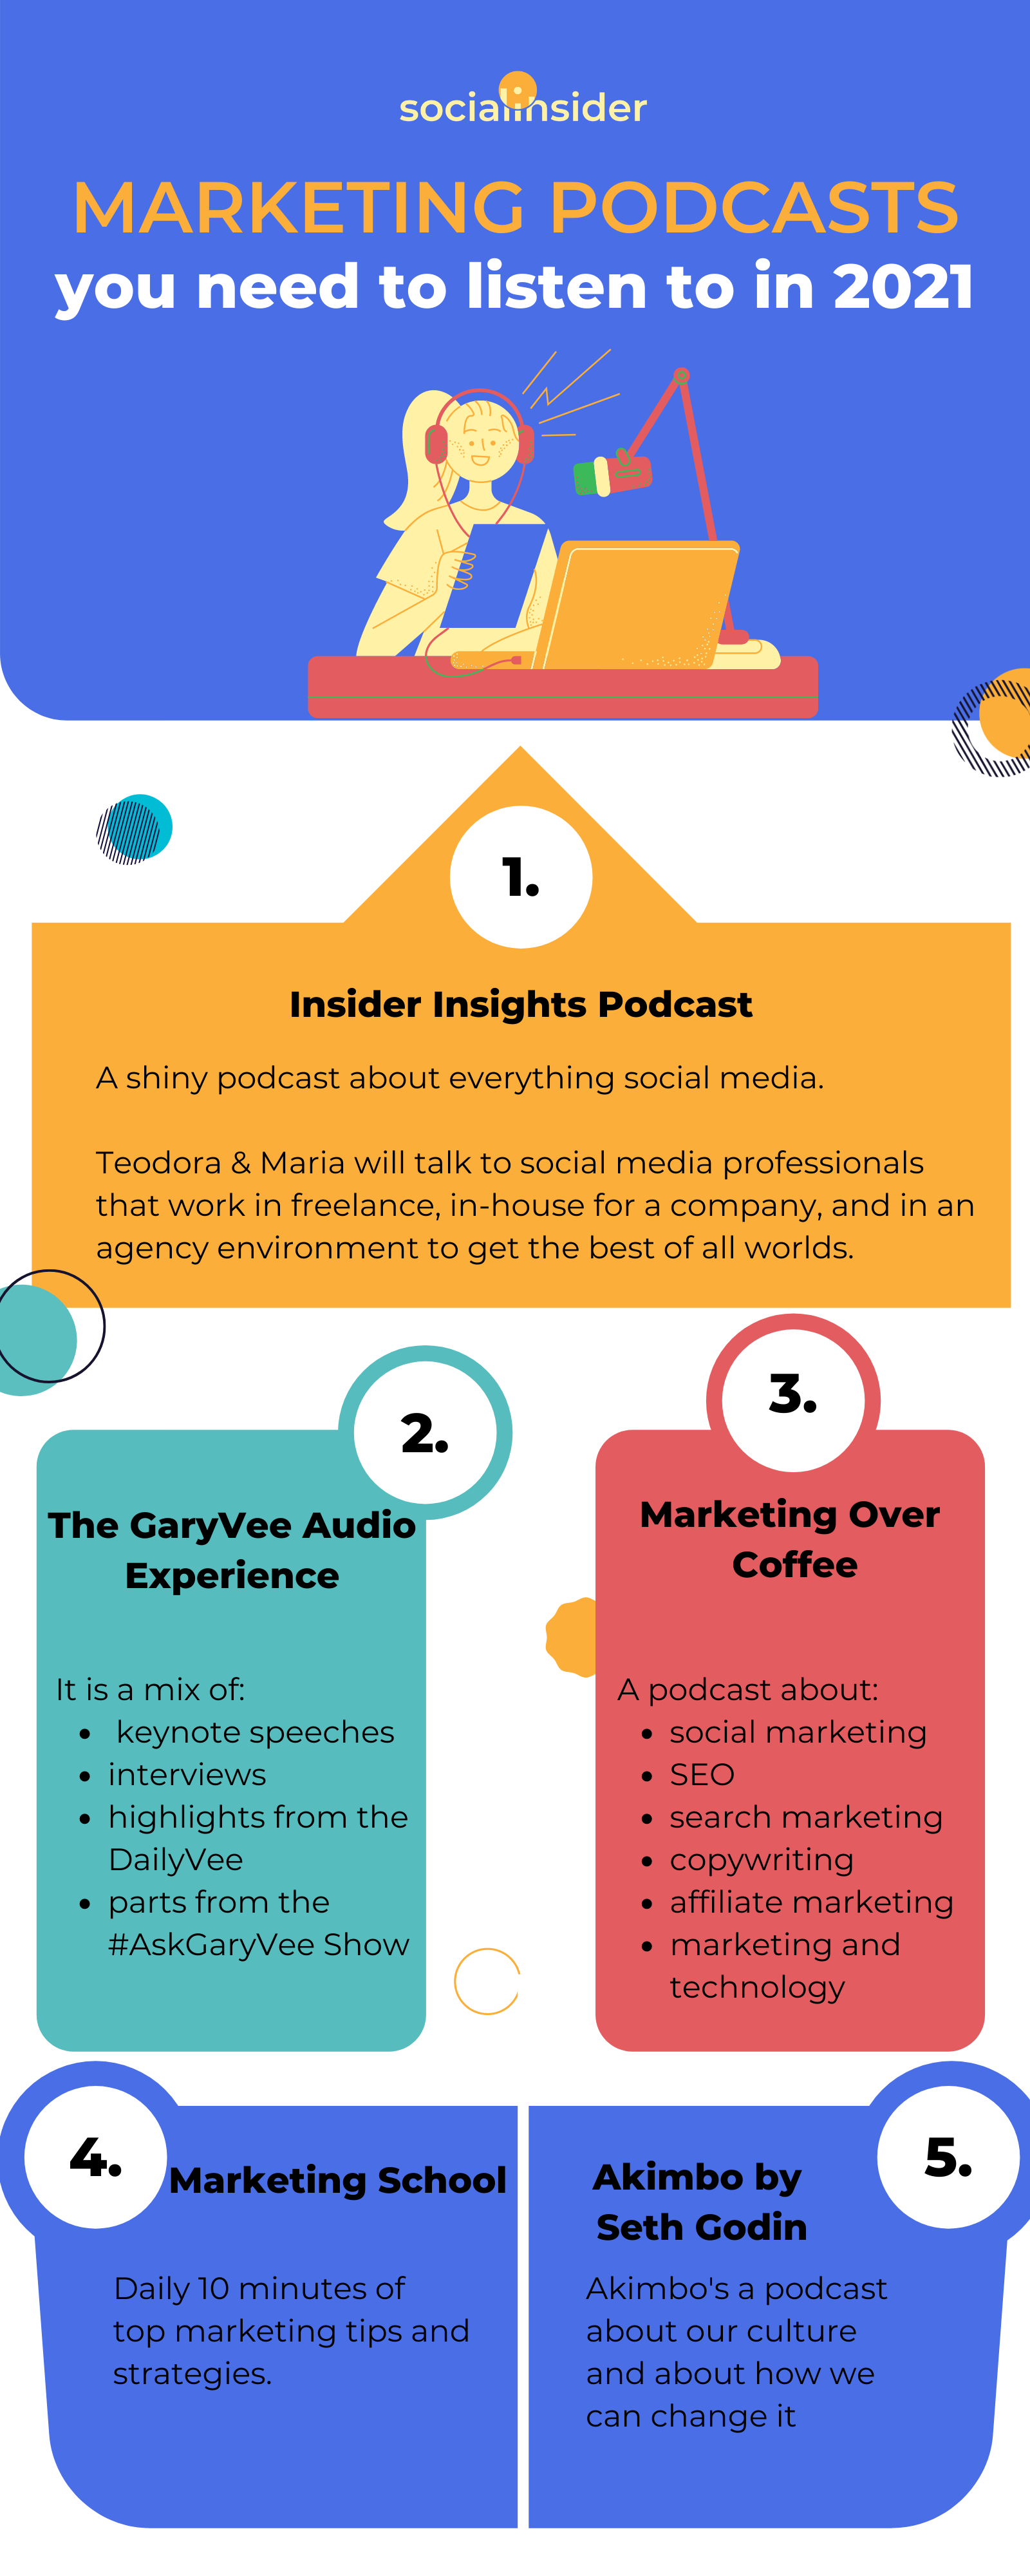 5 Promoting Podcasts You Want to Listen to in 2021 [Infographic]